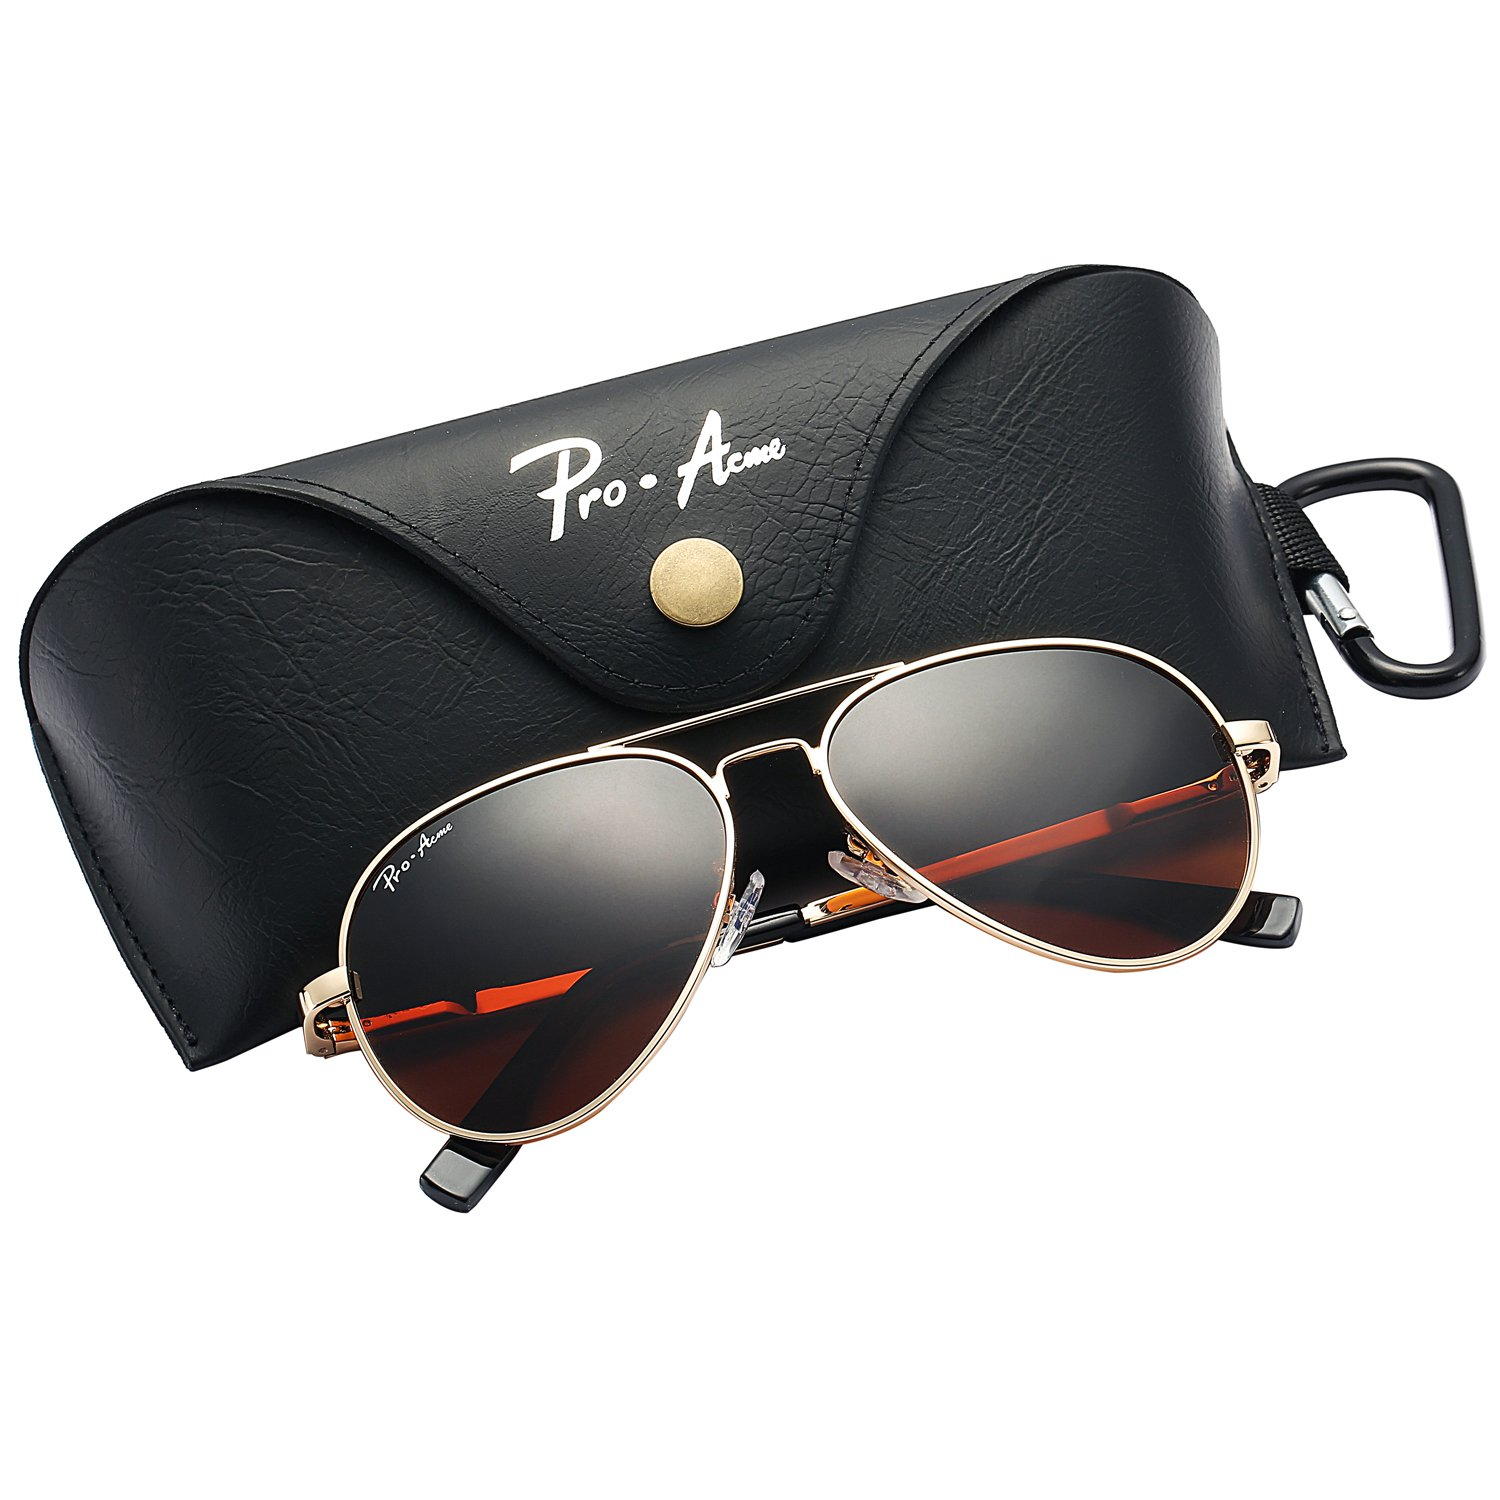 Pro Acme Small Polarized Aviator Sunglasses for Kids and Youth Age 5-18 (Gold Frame/Brown Lens)